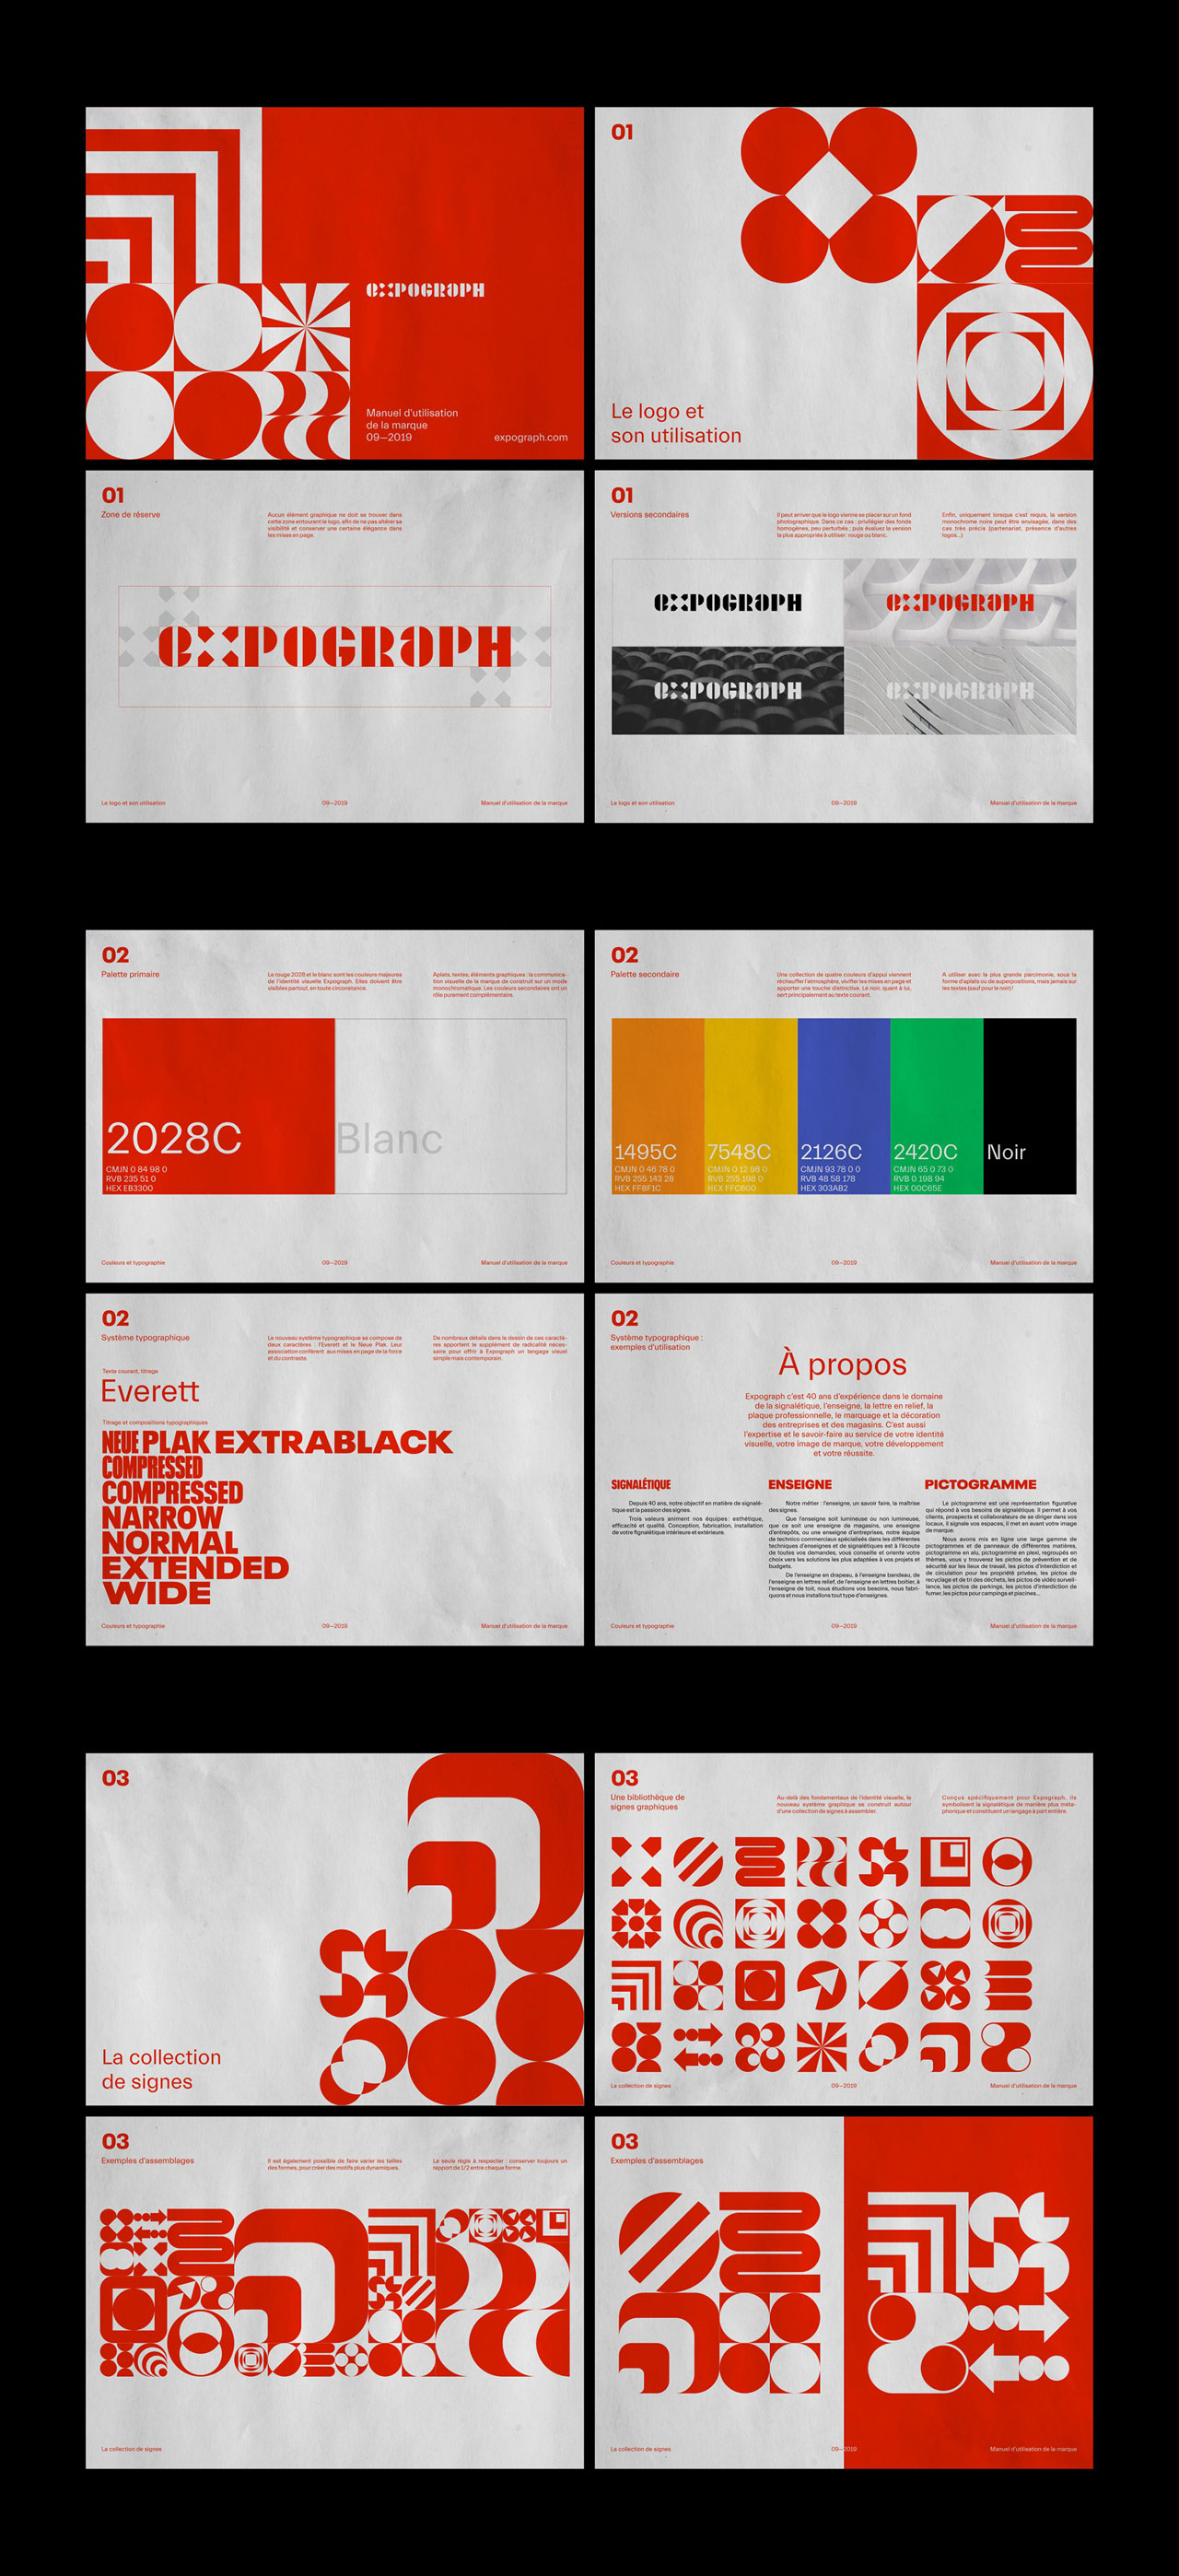 Expograph: Brand Identity & Graphic Design by Brand Brothers